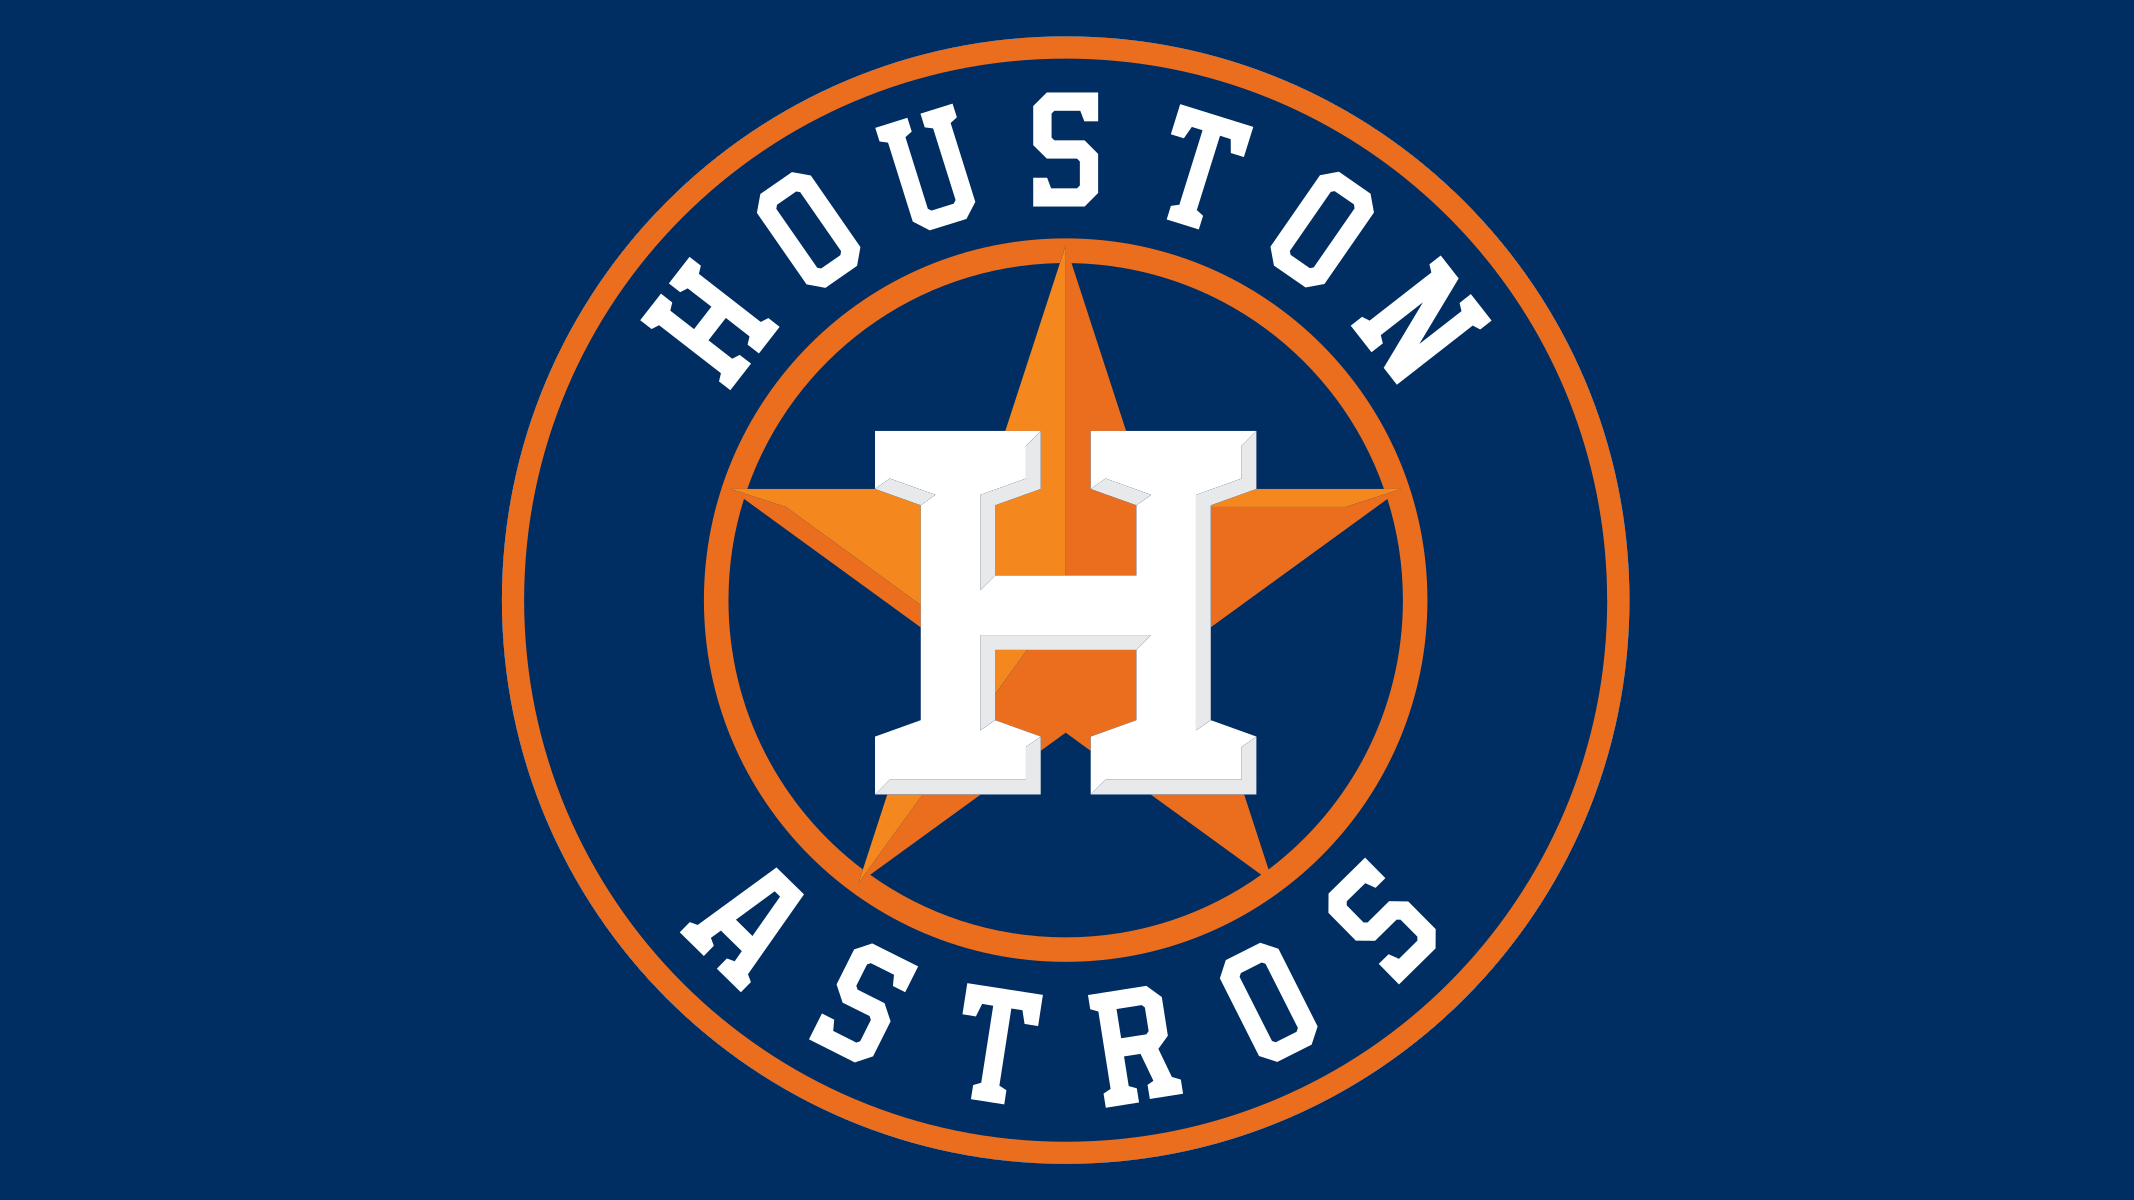 Astros Symbol >> Houston Astros Accused Of Sign Stealing During 2017